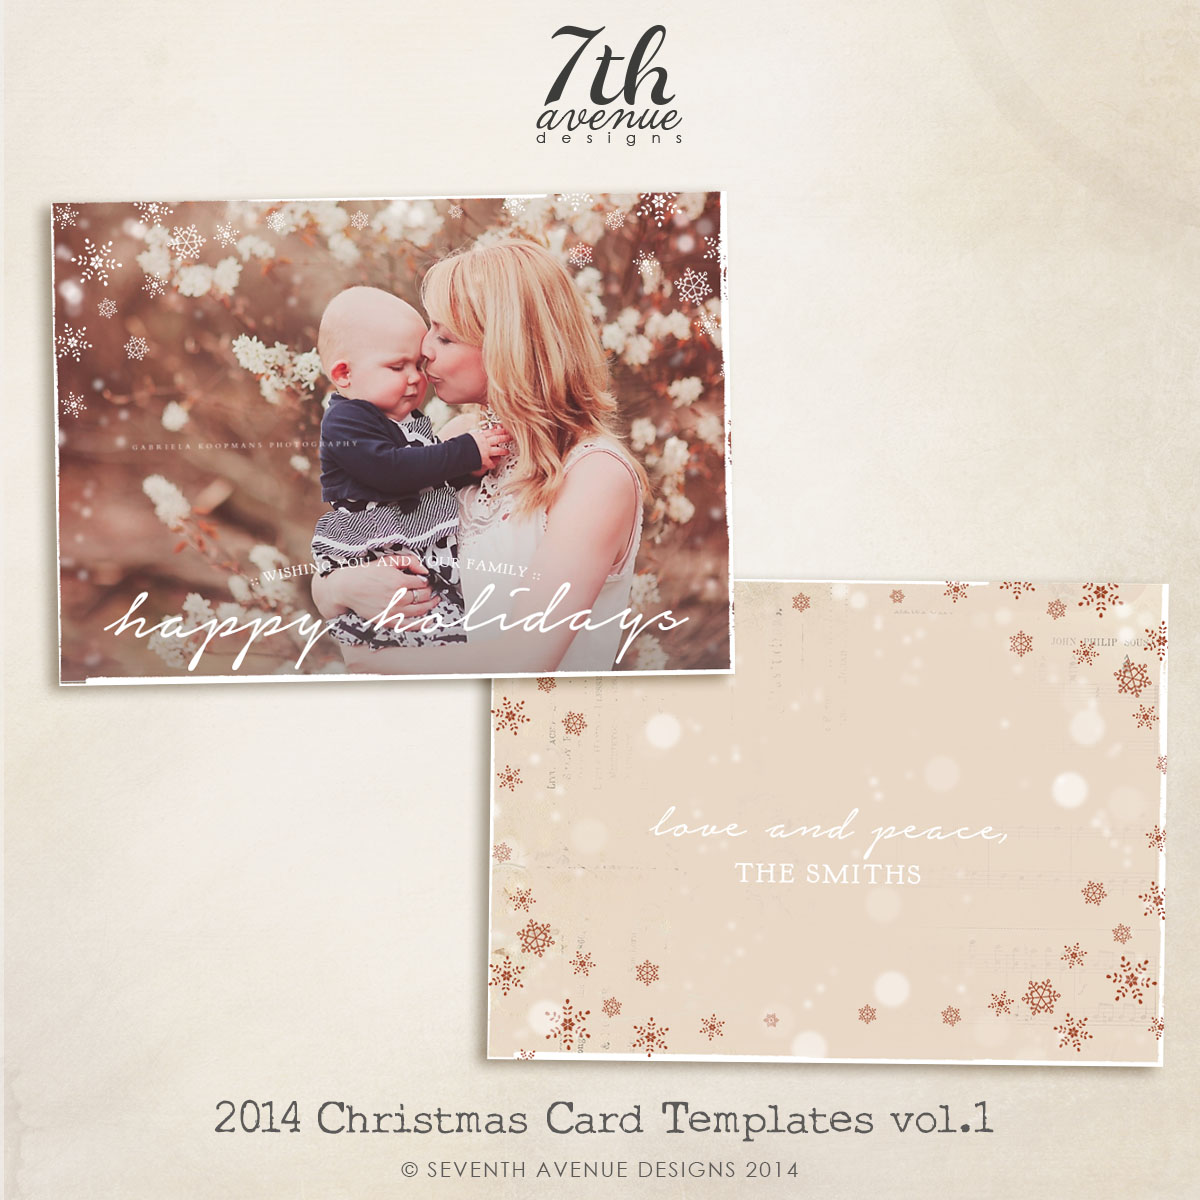 2014 Christmas Card Templates vol.1 -- 7x5 inch card template